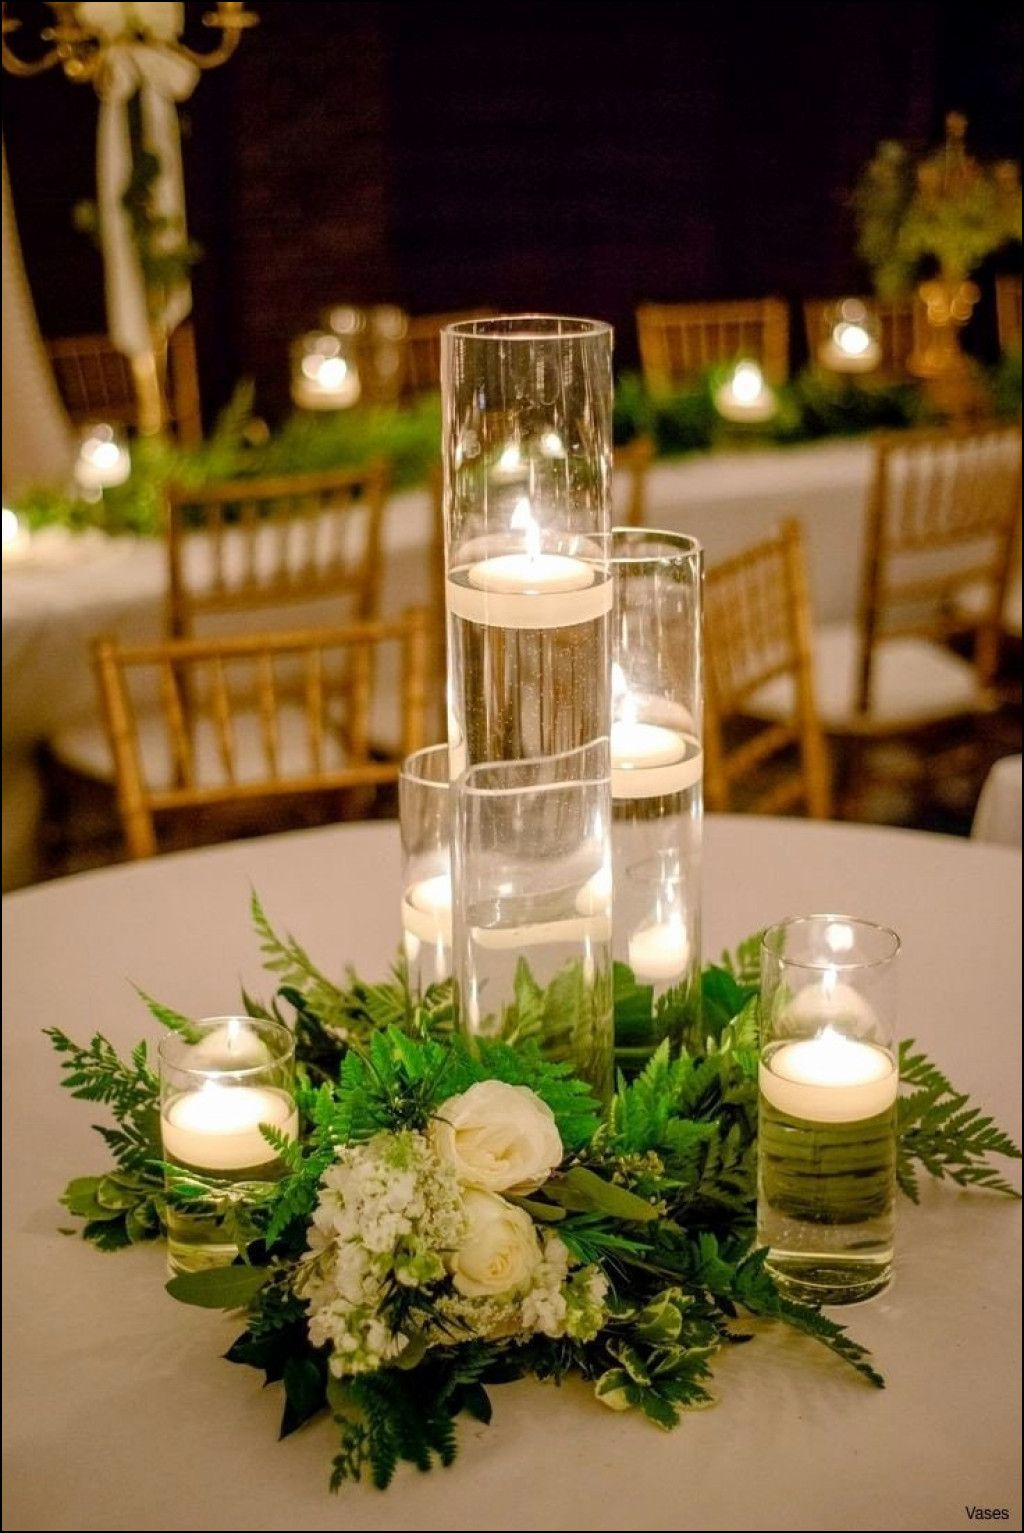 Cheap Wedding Decorations For Tables Ideas Affordable Wedding Centerpieces Wedding Table Centerpieces Wedding Candles Table